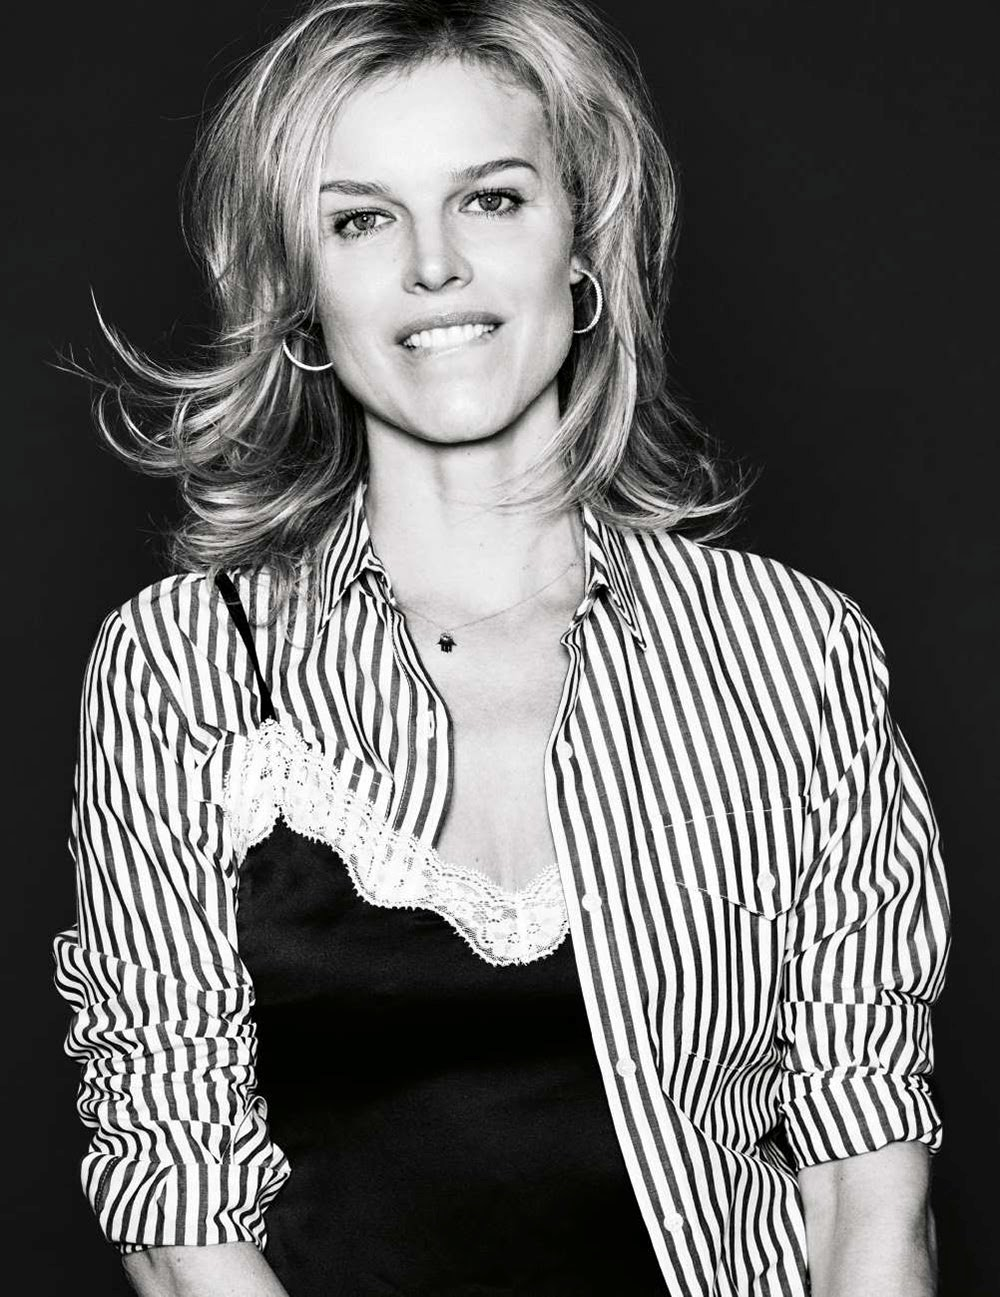 eva-herzigova-jan-welters-elle-france-march-30-2018-  (7).jpg